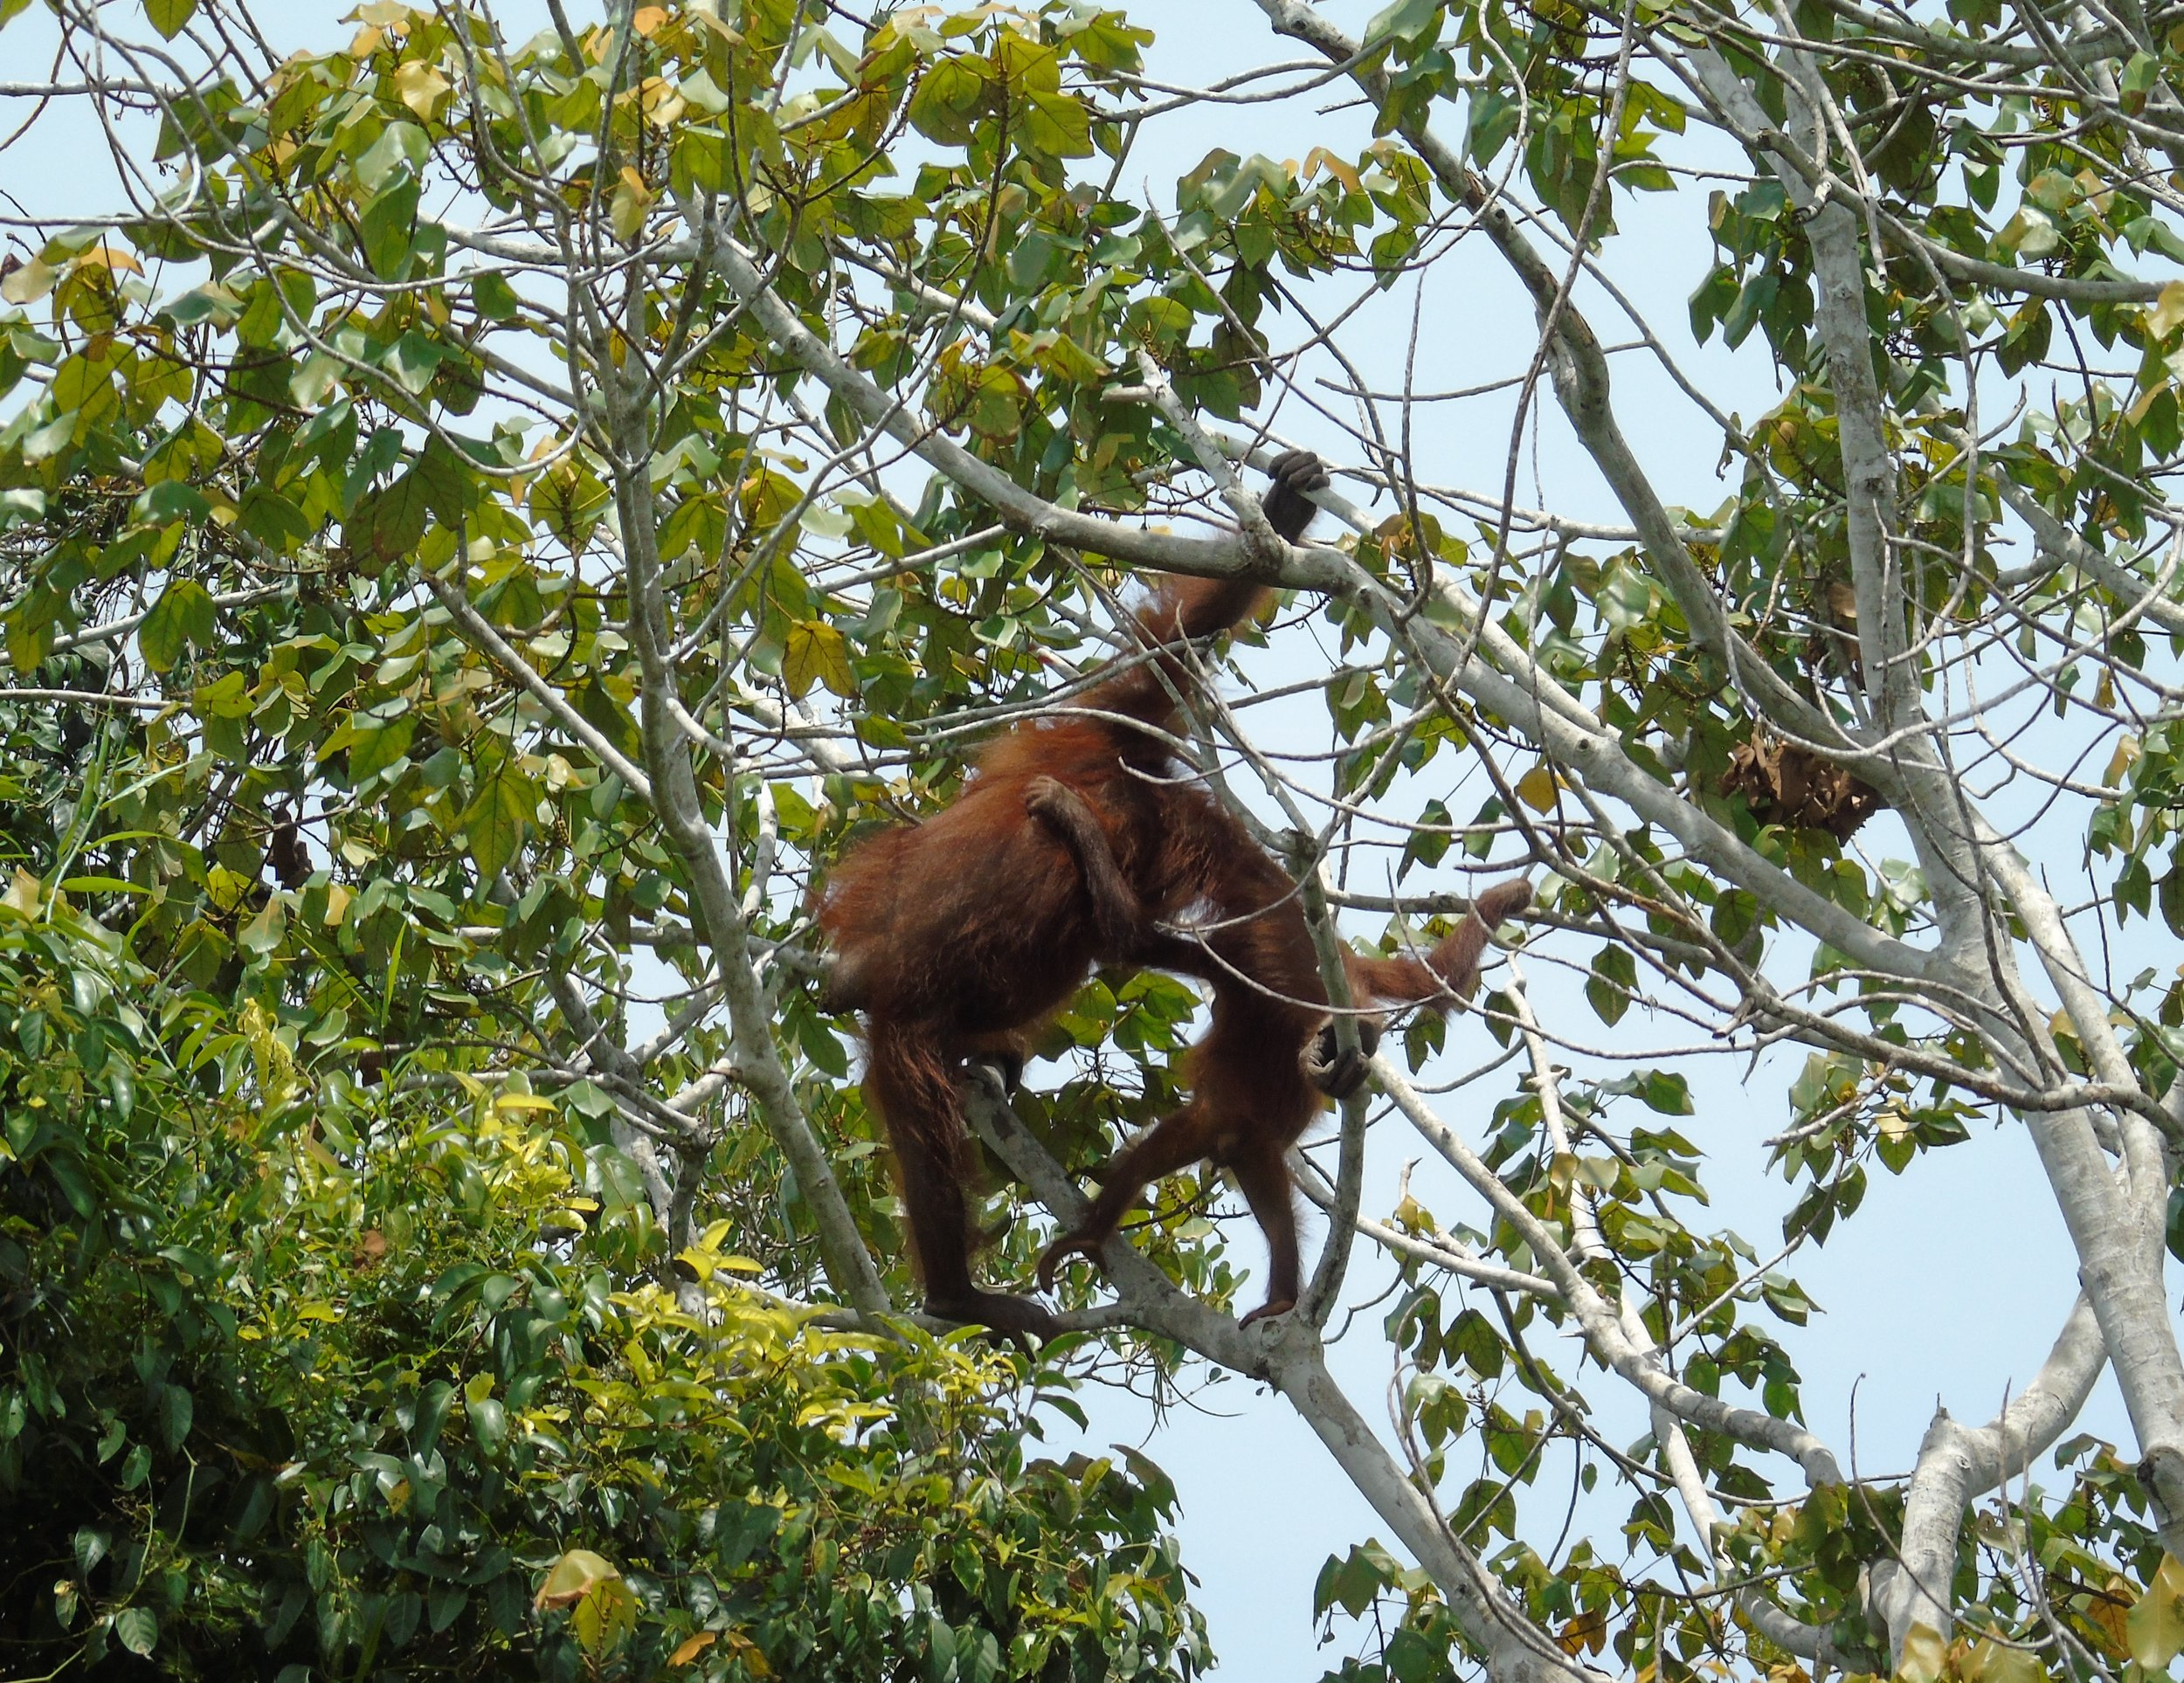 Mother and infant climb higher into the trees